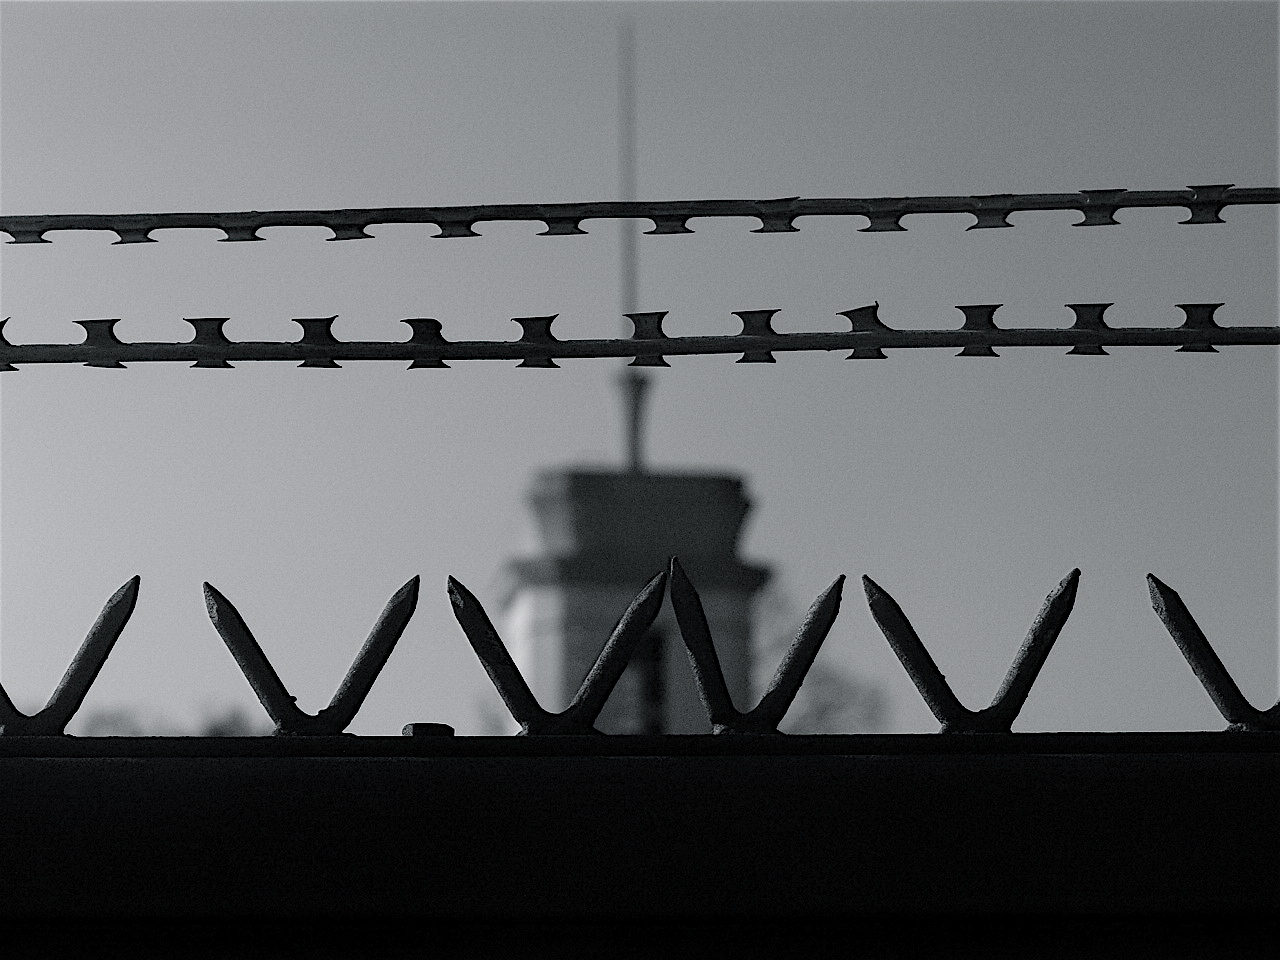 A razorwire fence at a prison.